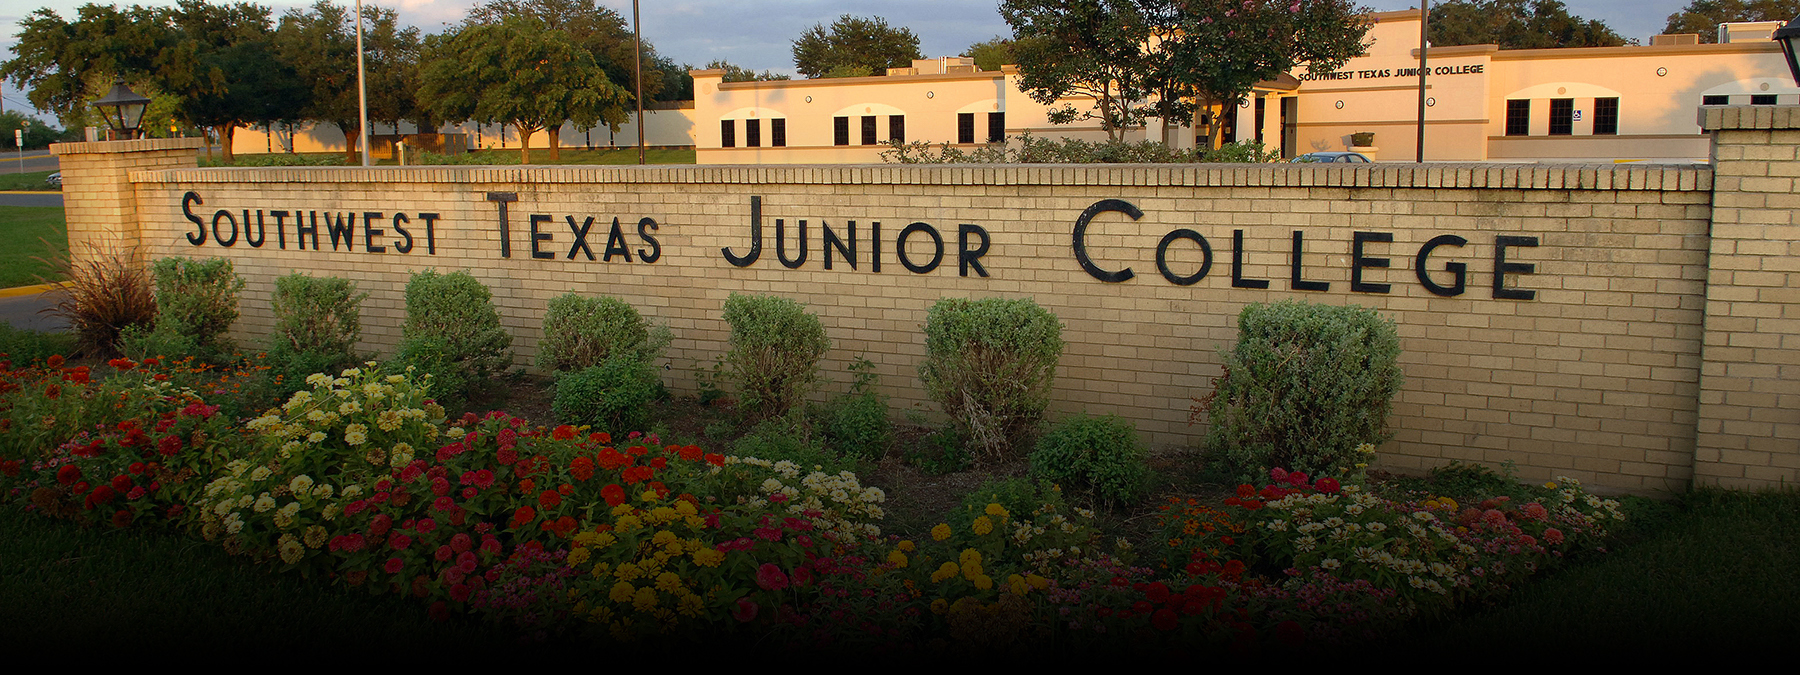 Uvalde's Southwest Texas Junior College brick wall entrance with colorful flowers planed in front of it